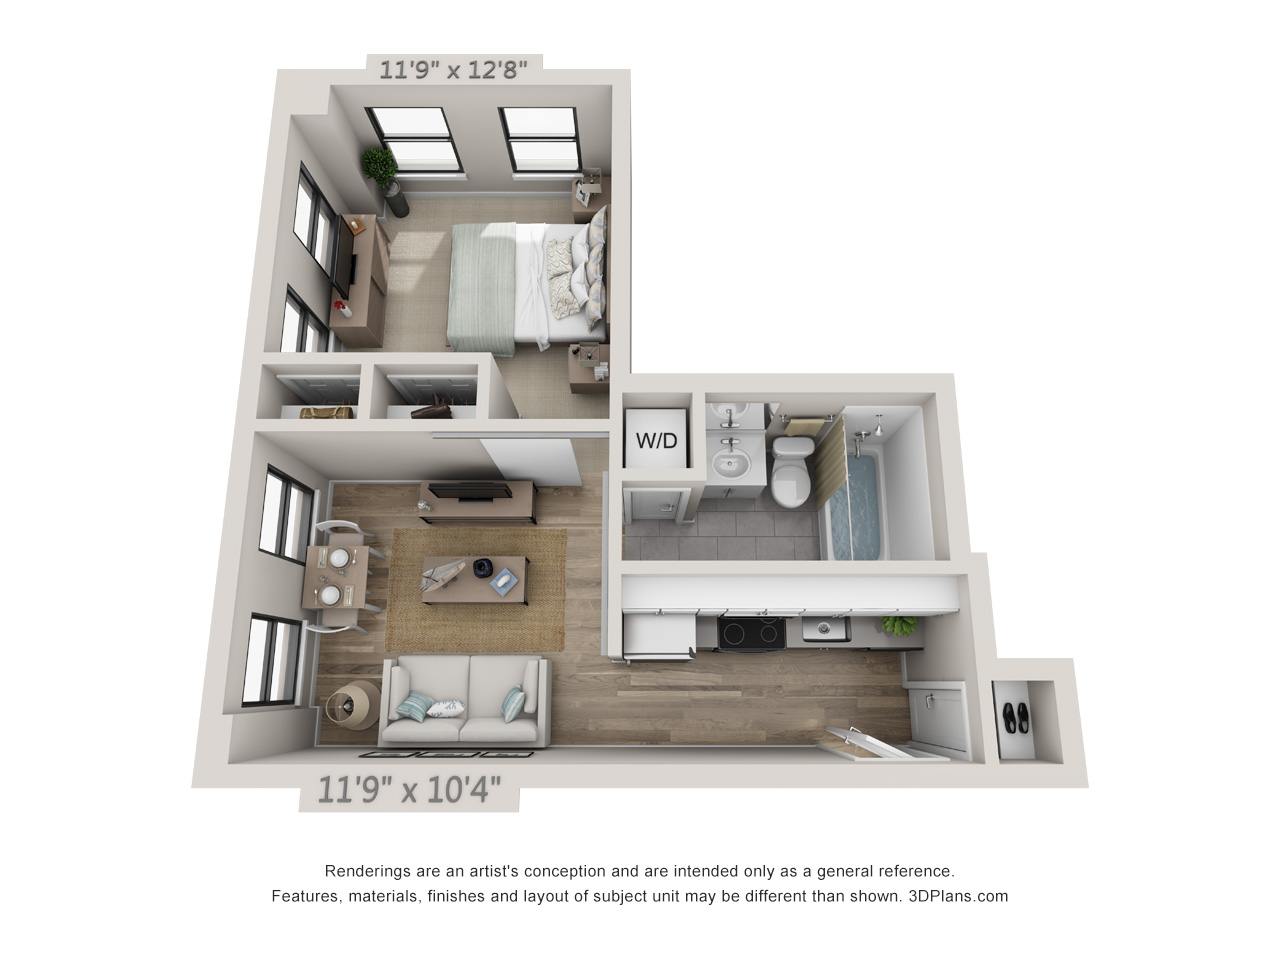 1 Bedroom Apartments In Center City